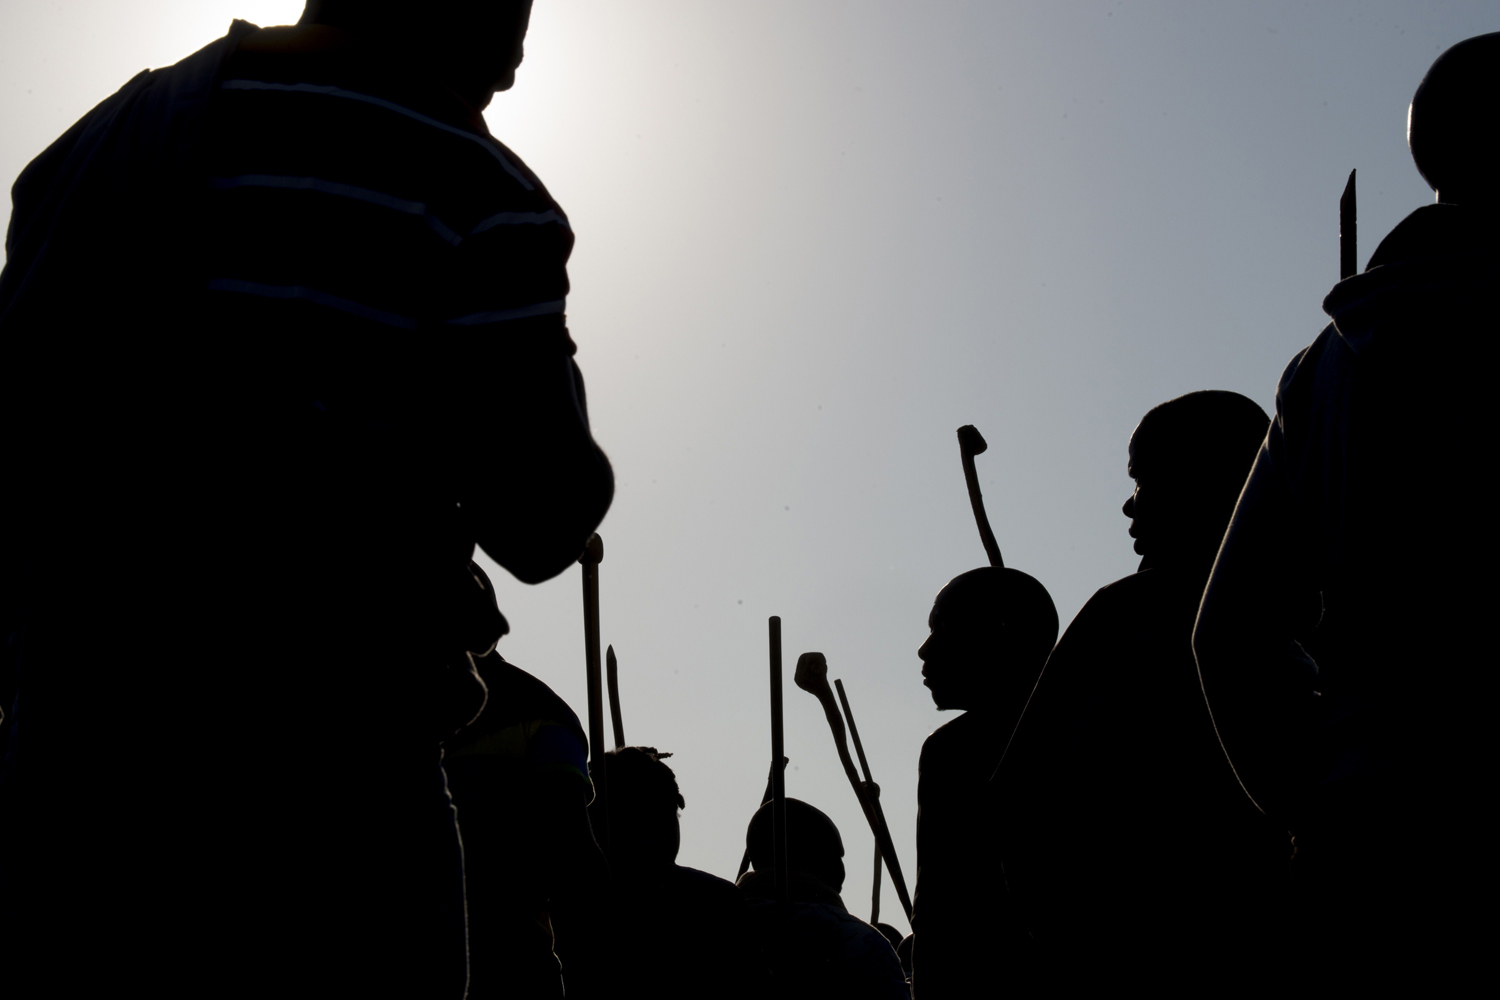 May 14, 2014. Hundreds of striking miners marched at a Lonmin platinum mine in South Africa where bosses have been trying to break deadly stoppages that have severely curbed production.